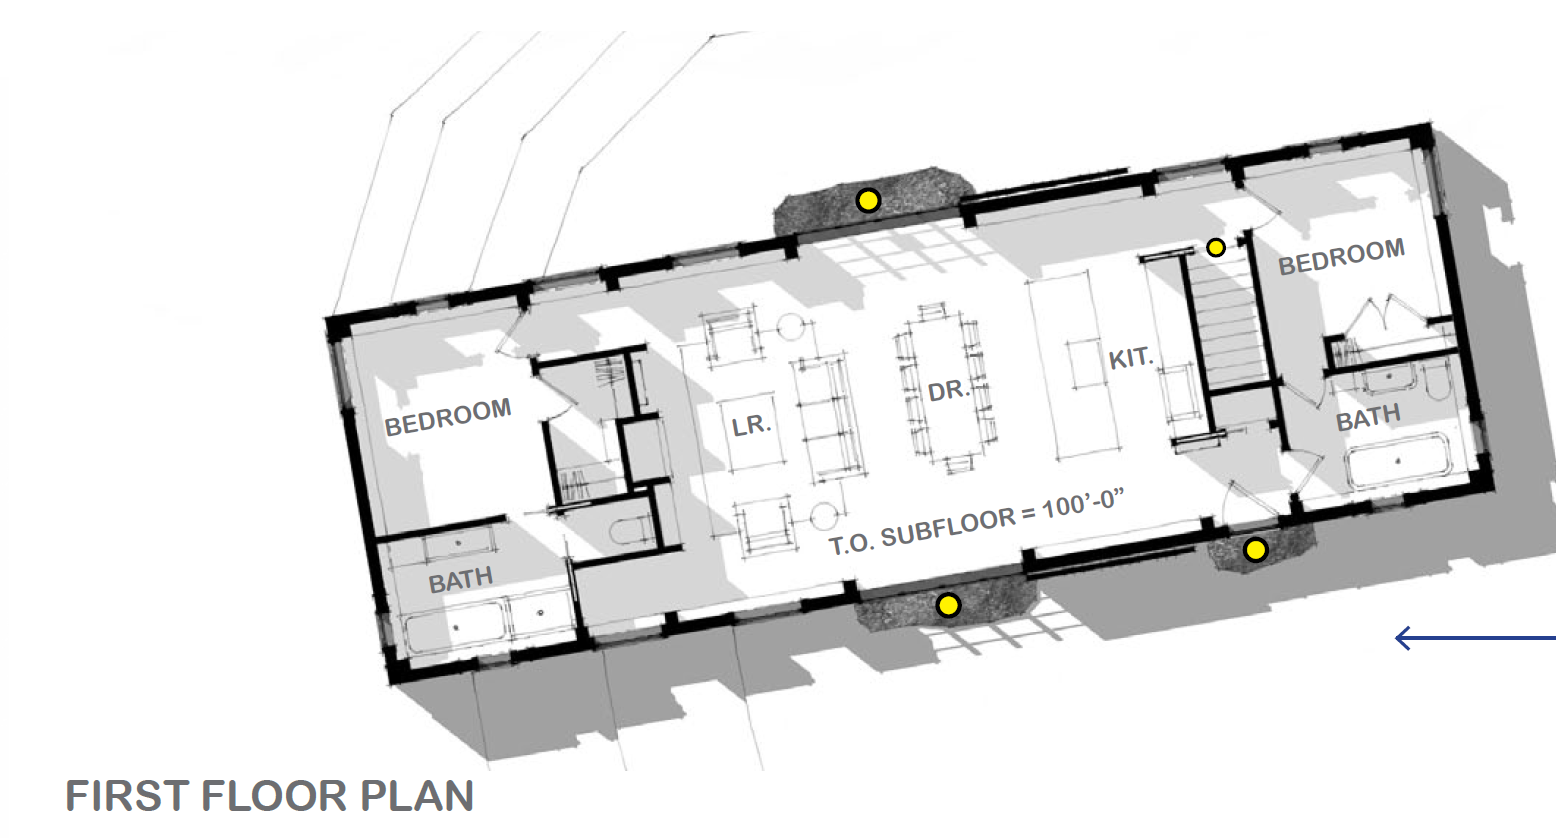 Plan view of first floor